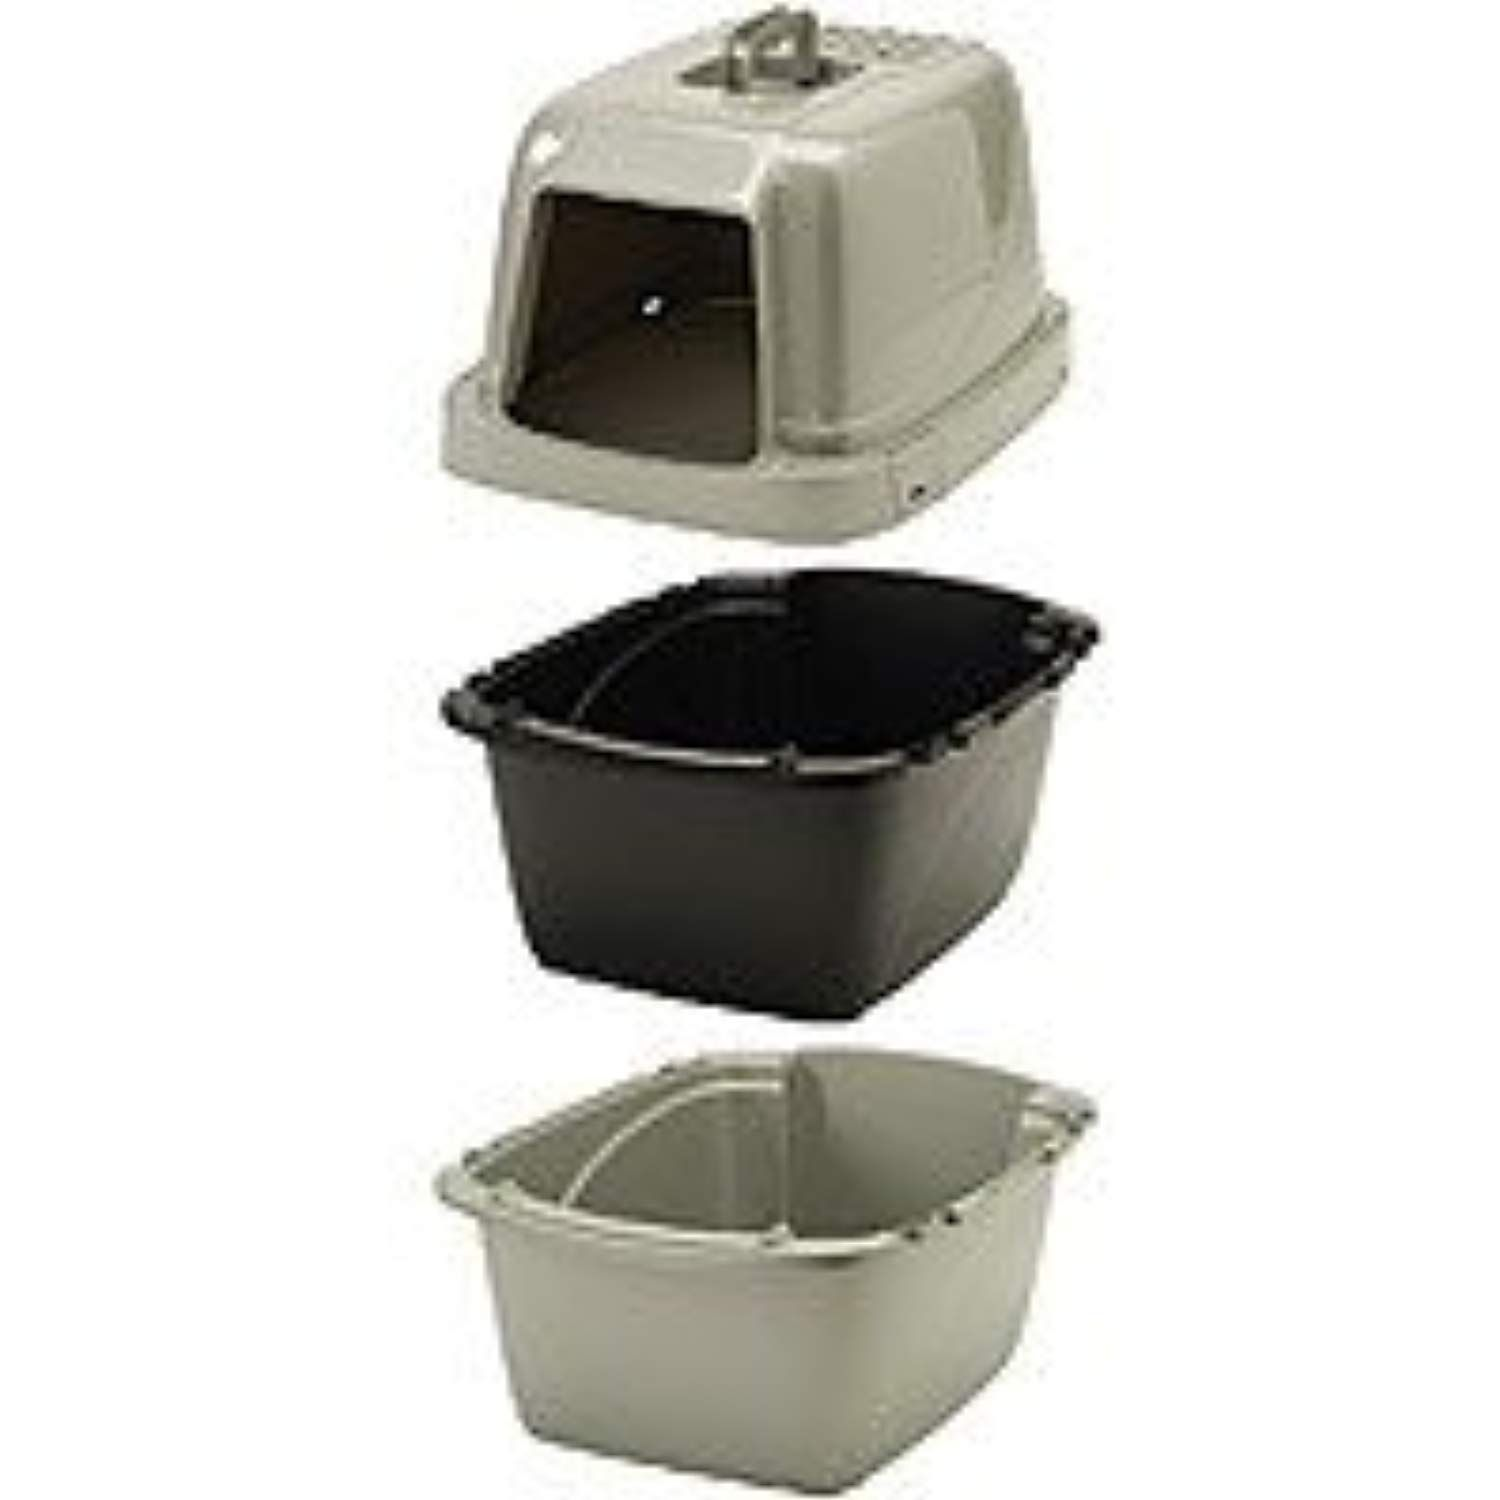 Van Ness Pureness Covered Cat Litter Box Find Out More About The Great Product At The Image Link This Is An Affiliate Cat Litter Cat Litter Pan Litter Box